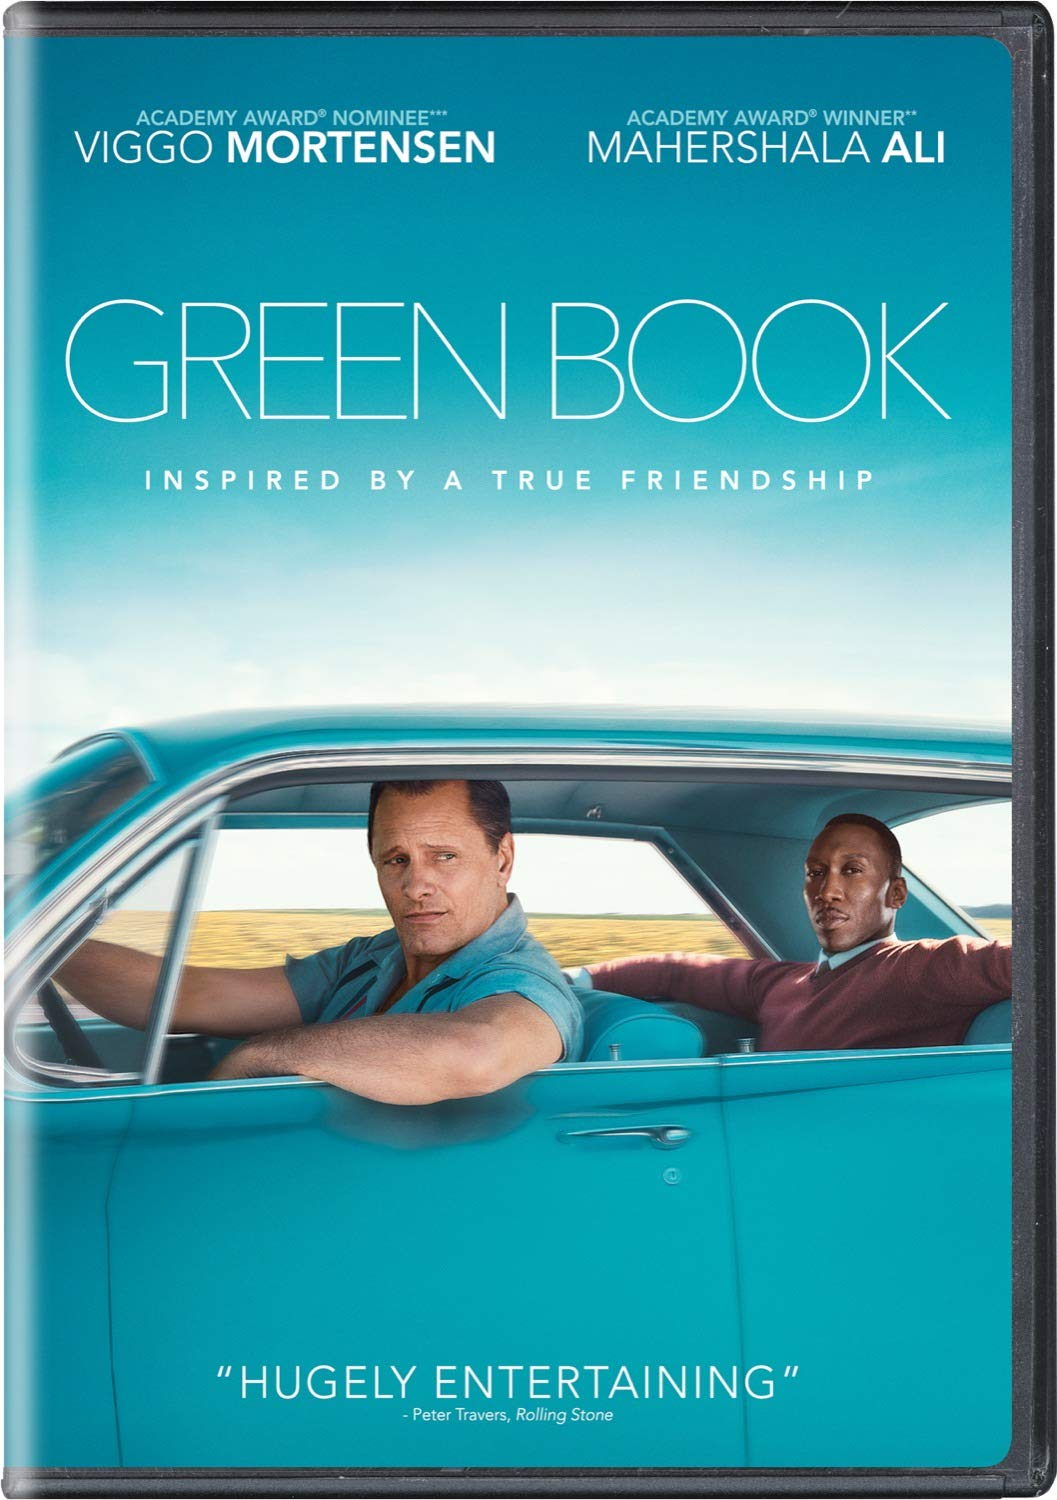 Green Book DVD Cover-copyrighted image